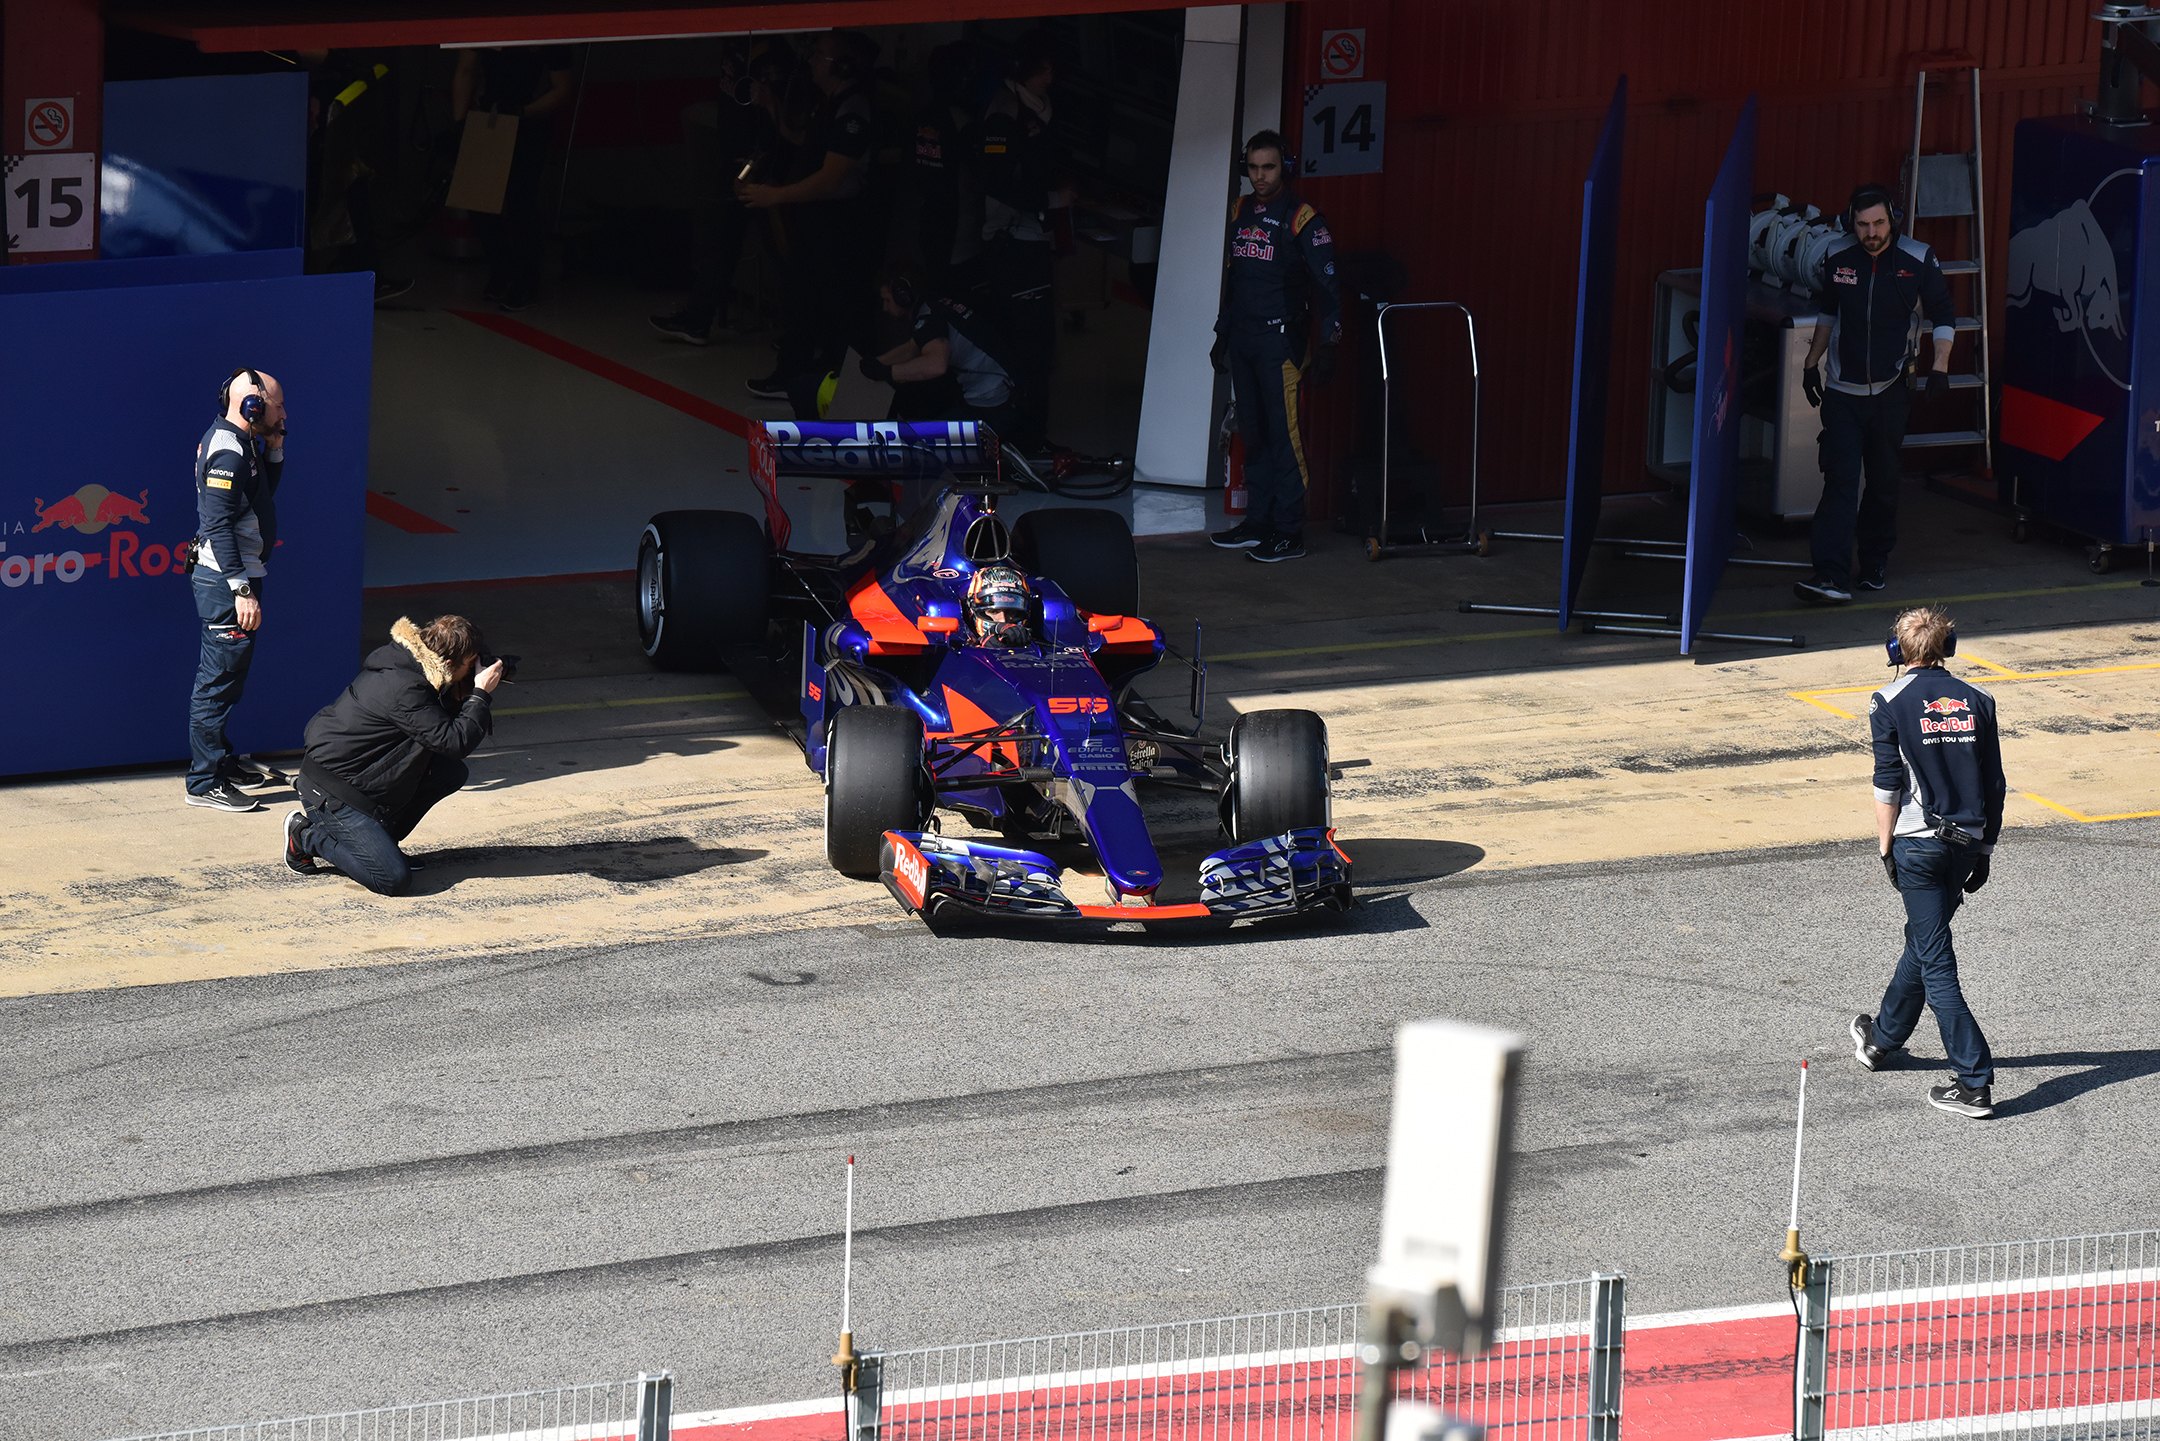 F1 Testday start - 2017 - Scuderia Toro Rosso F1 STR12 - photo by Jacques Denis - Team DESIGNMOTEUR